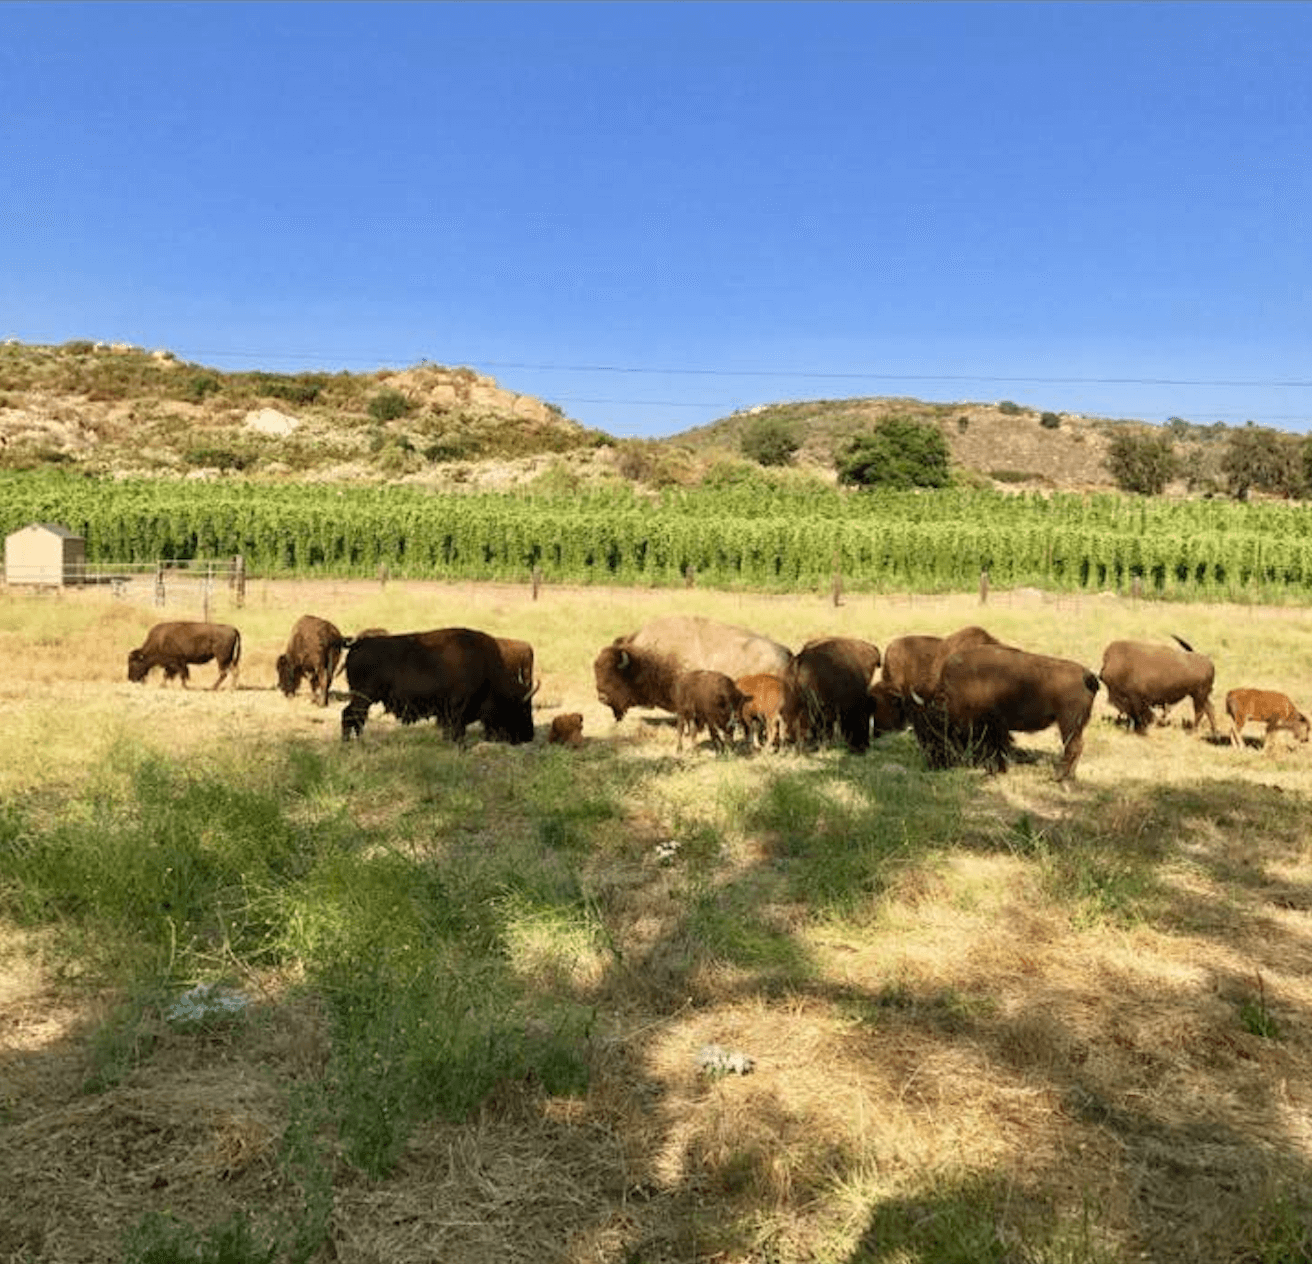 Bison Grazing in the Fields